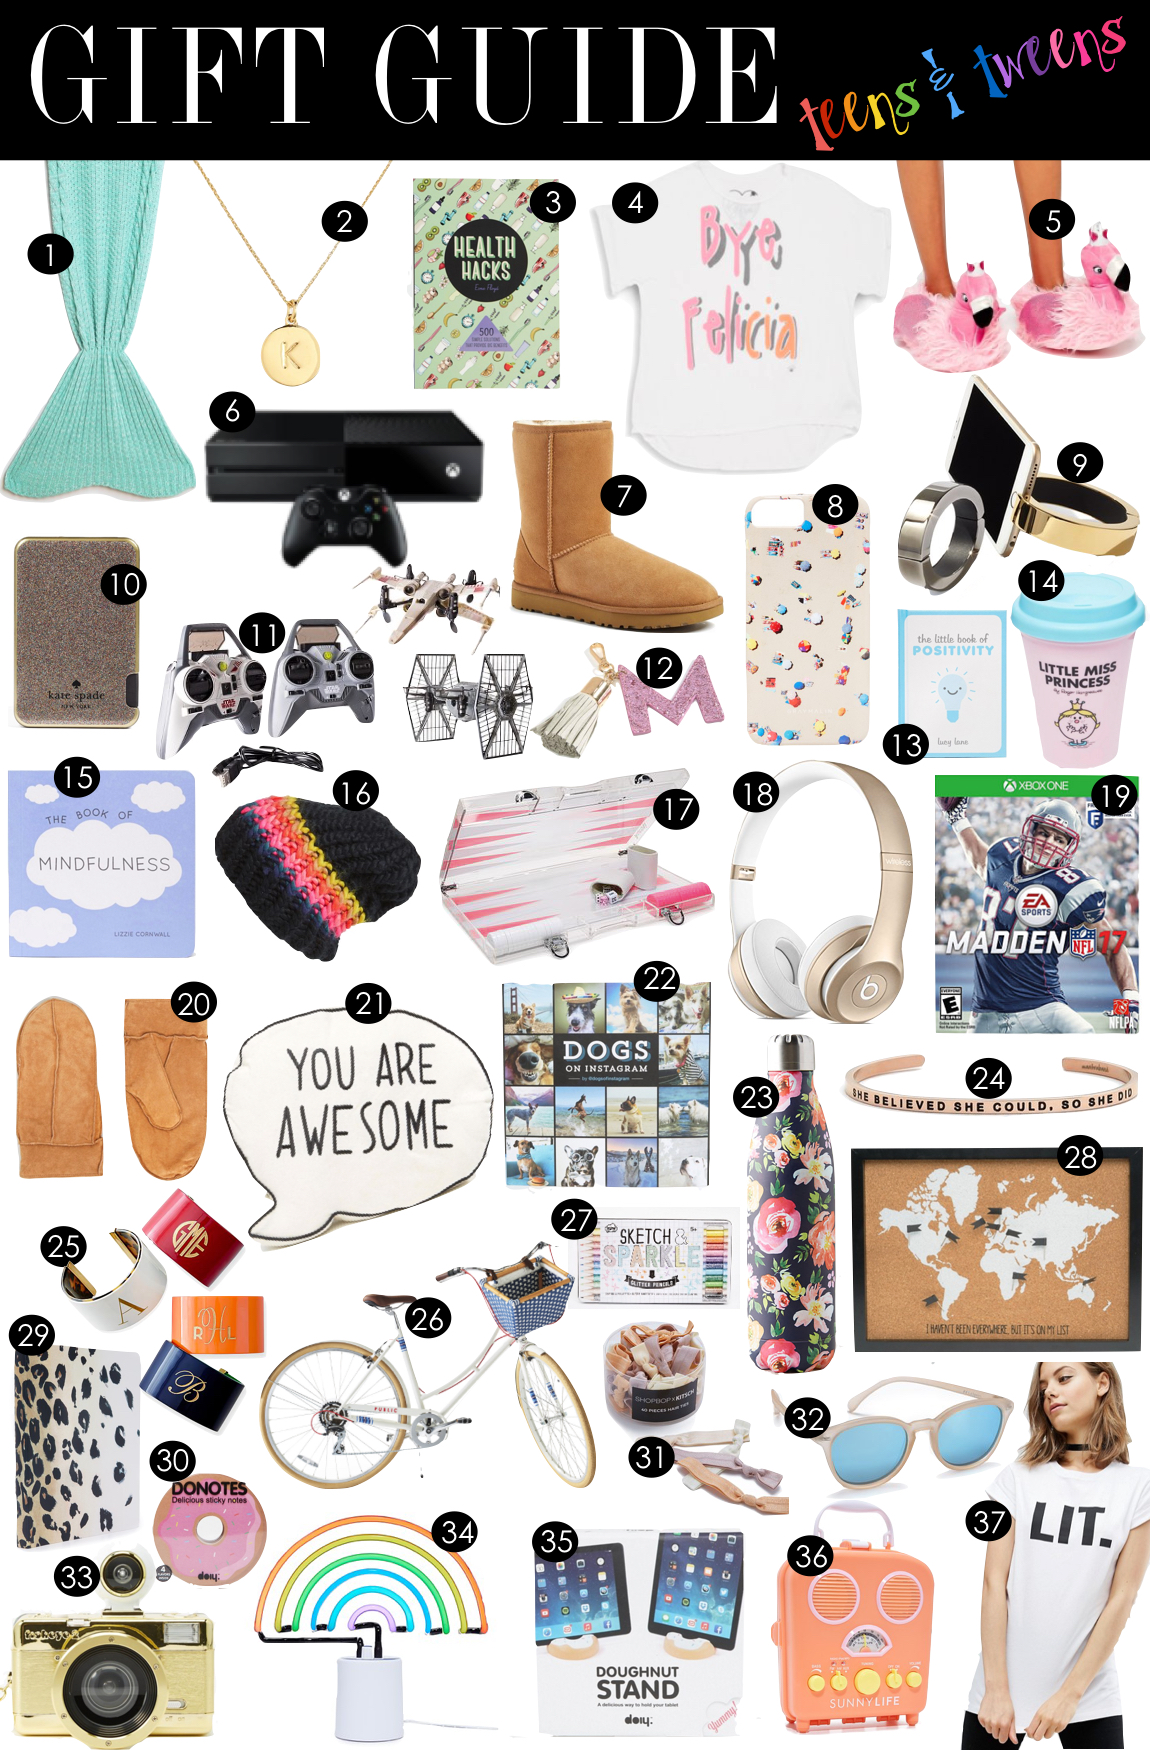 Gift Guide for Teens + Tweens |  Kiki's List